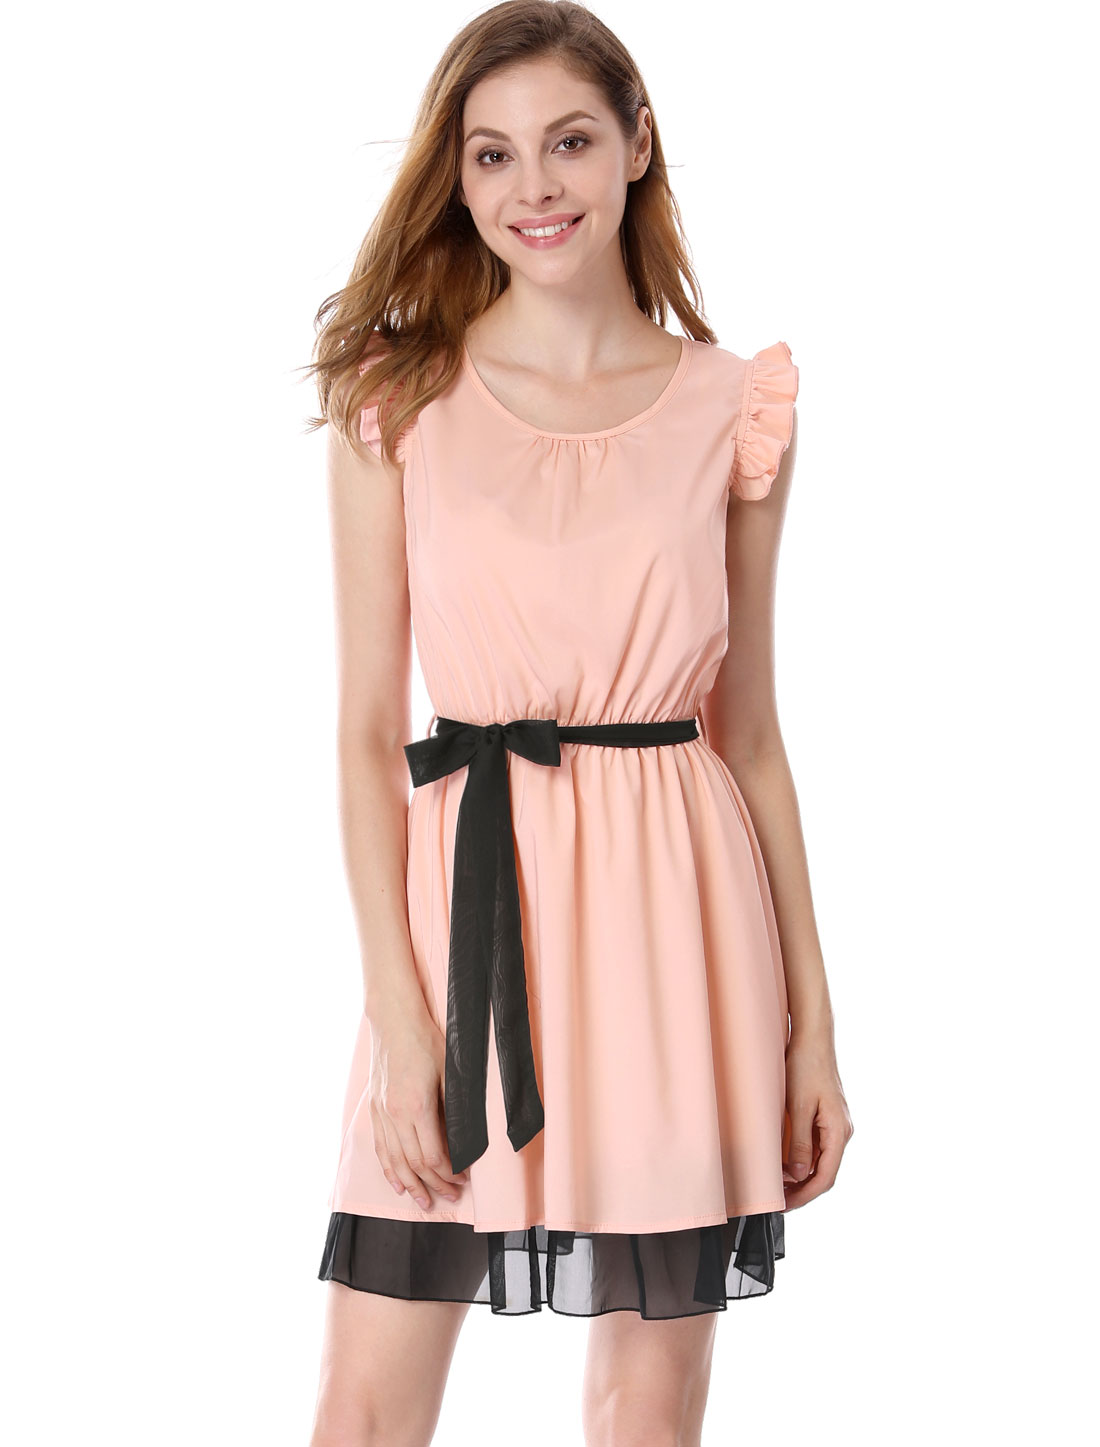 Women Chic Black Splice Hem Pink Lined Above Knee Dress L